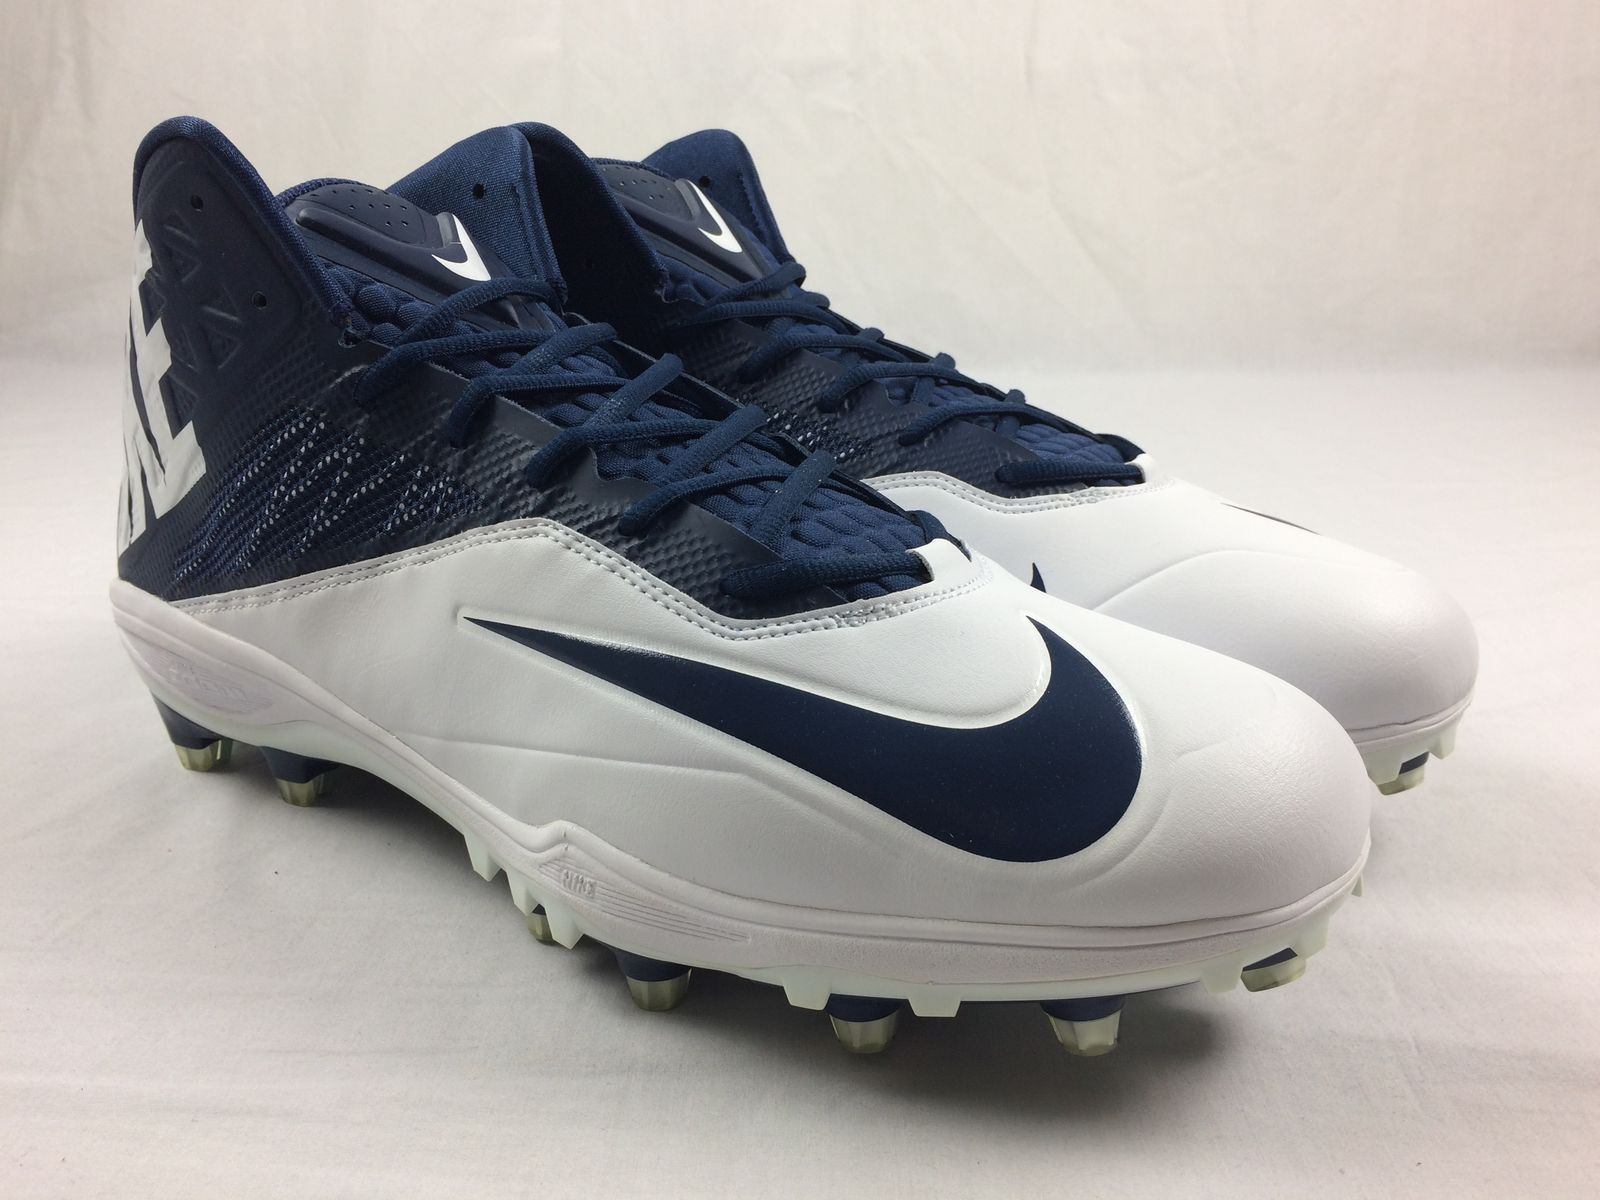 599c85f89273 Details about NEW Nike Nike Zoom Code Elite 3 4 TD - White Blue Cleats ( Men s Multiple Sizes)